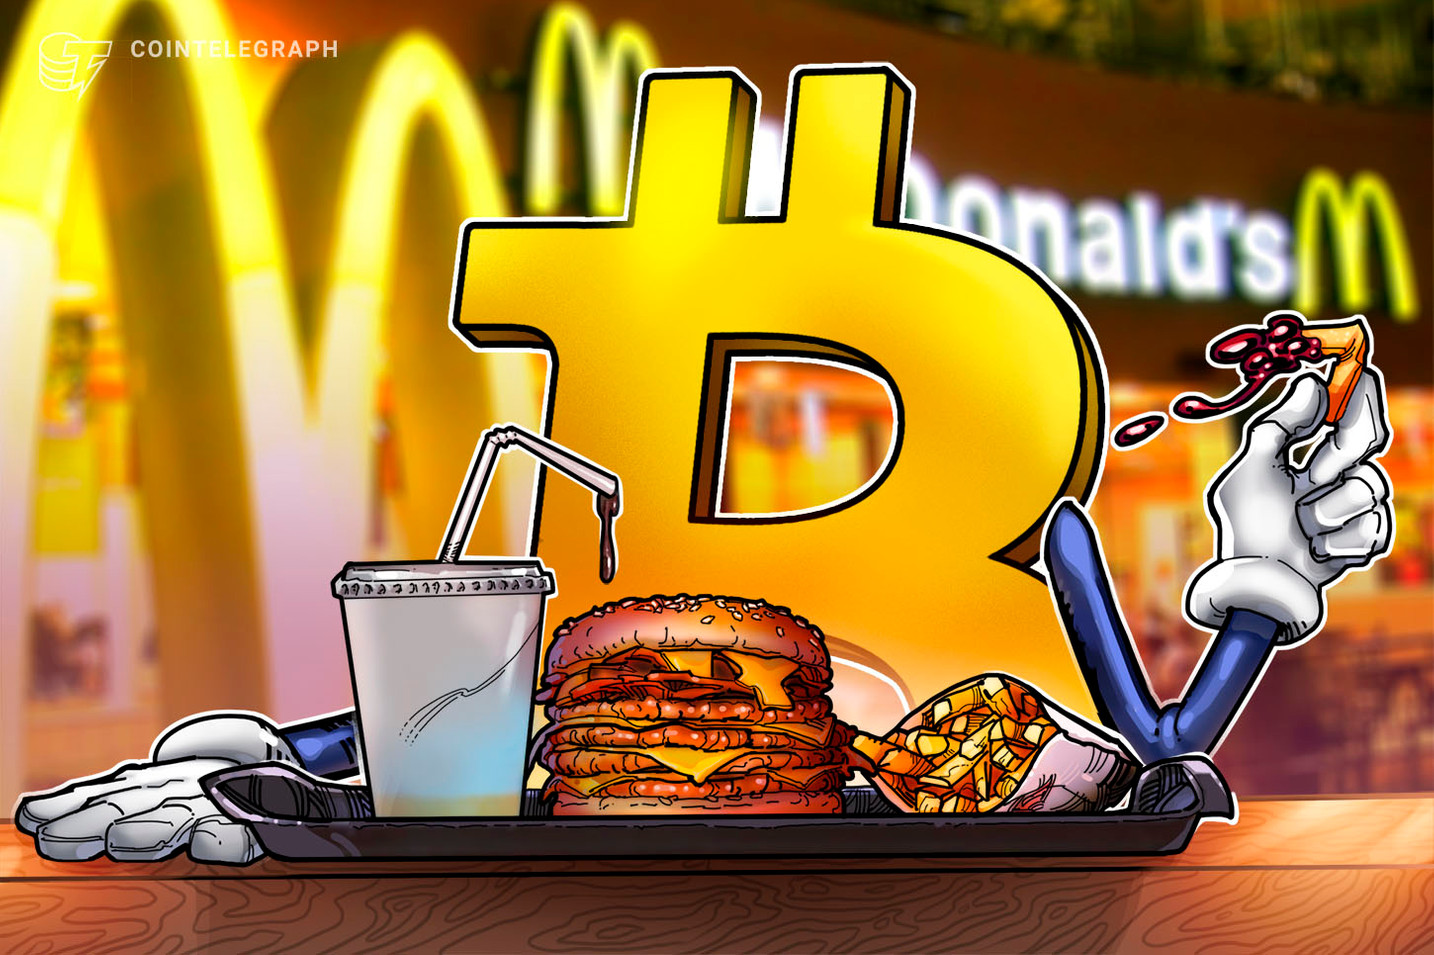 Bitcoin burgernomics: This is how many Big Macs you can buy with 1 BTC